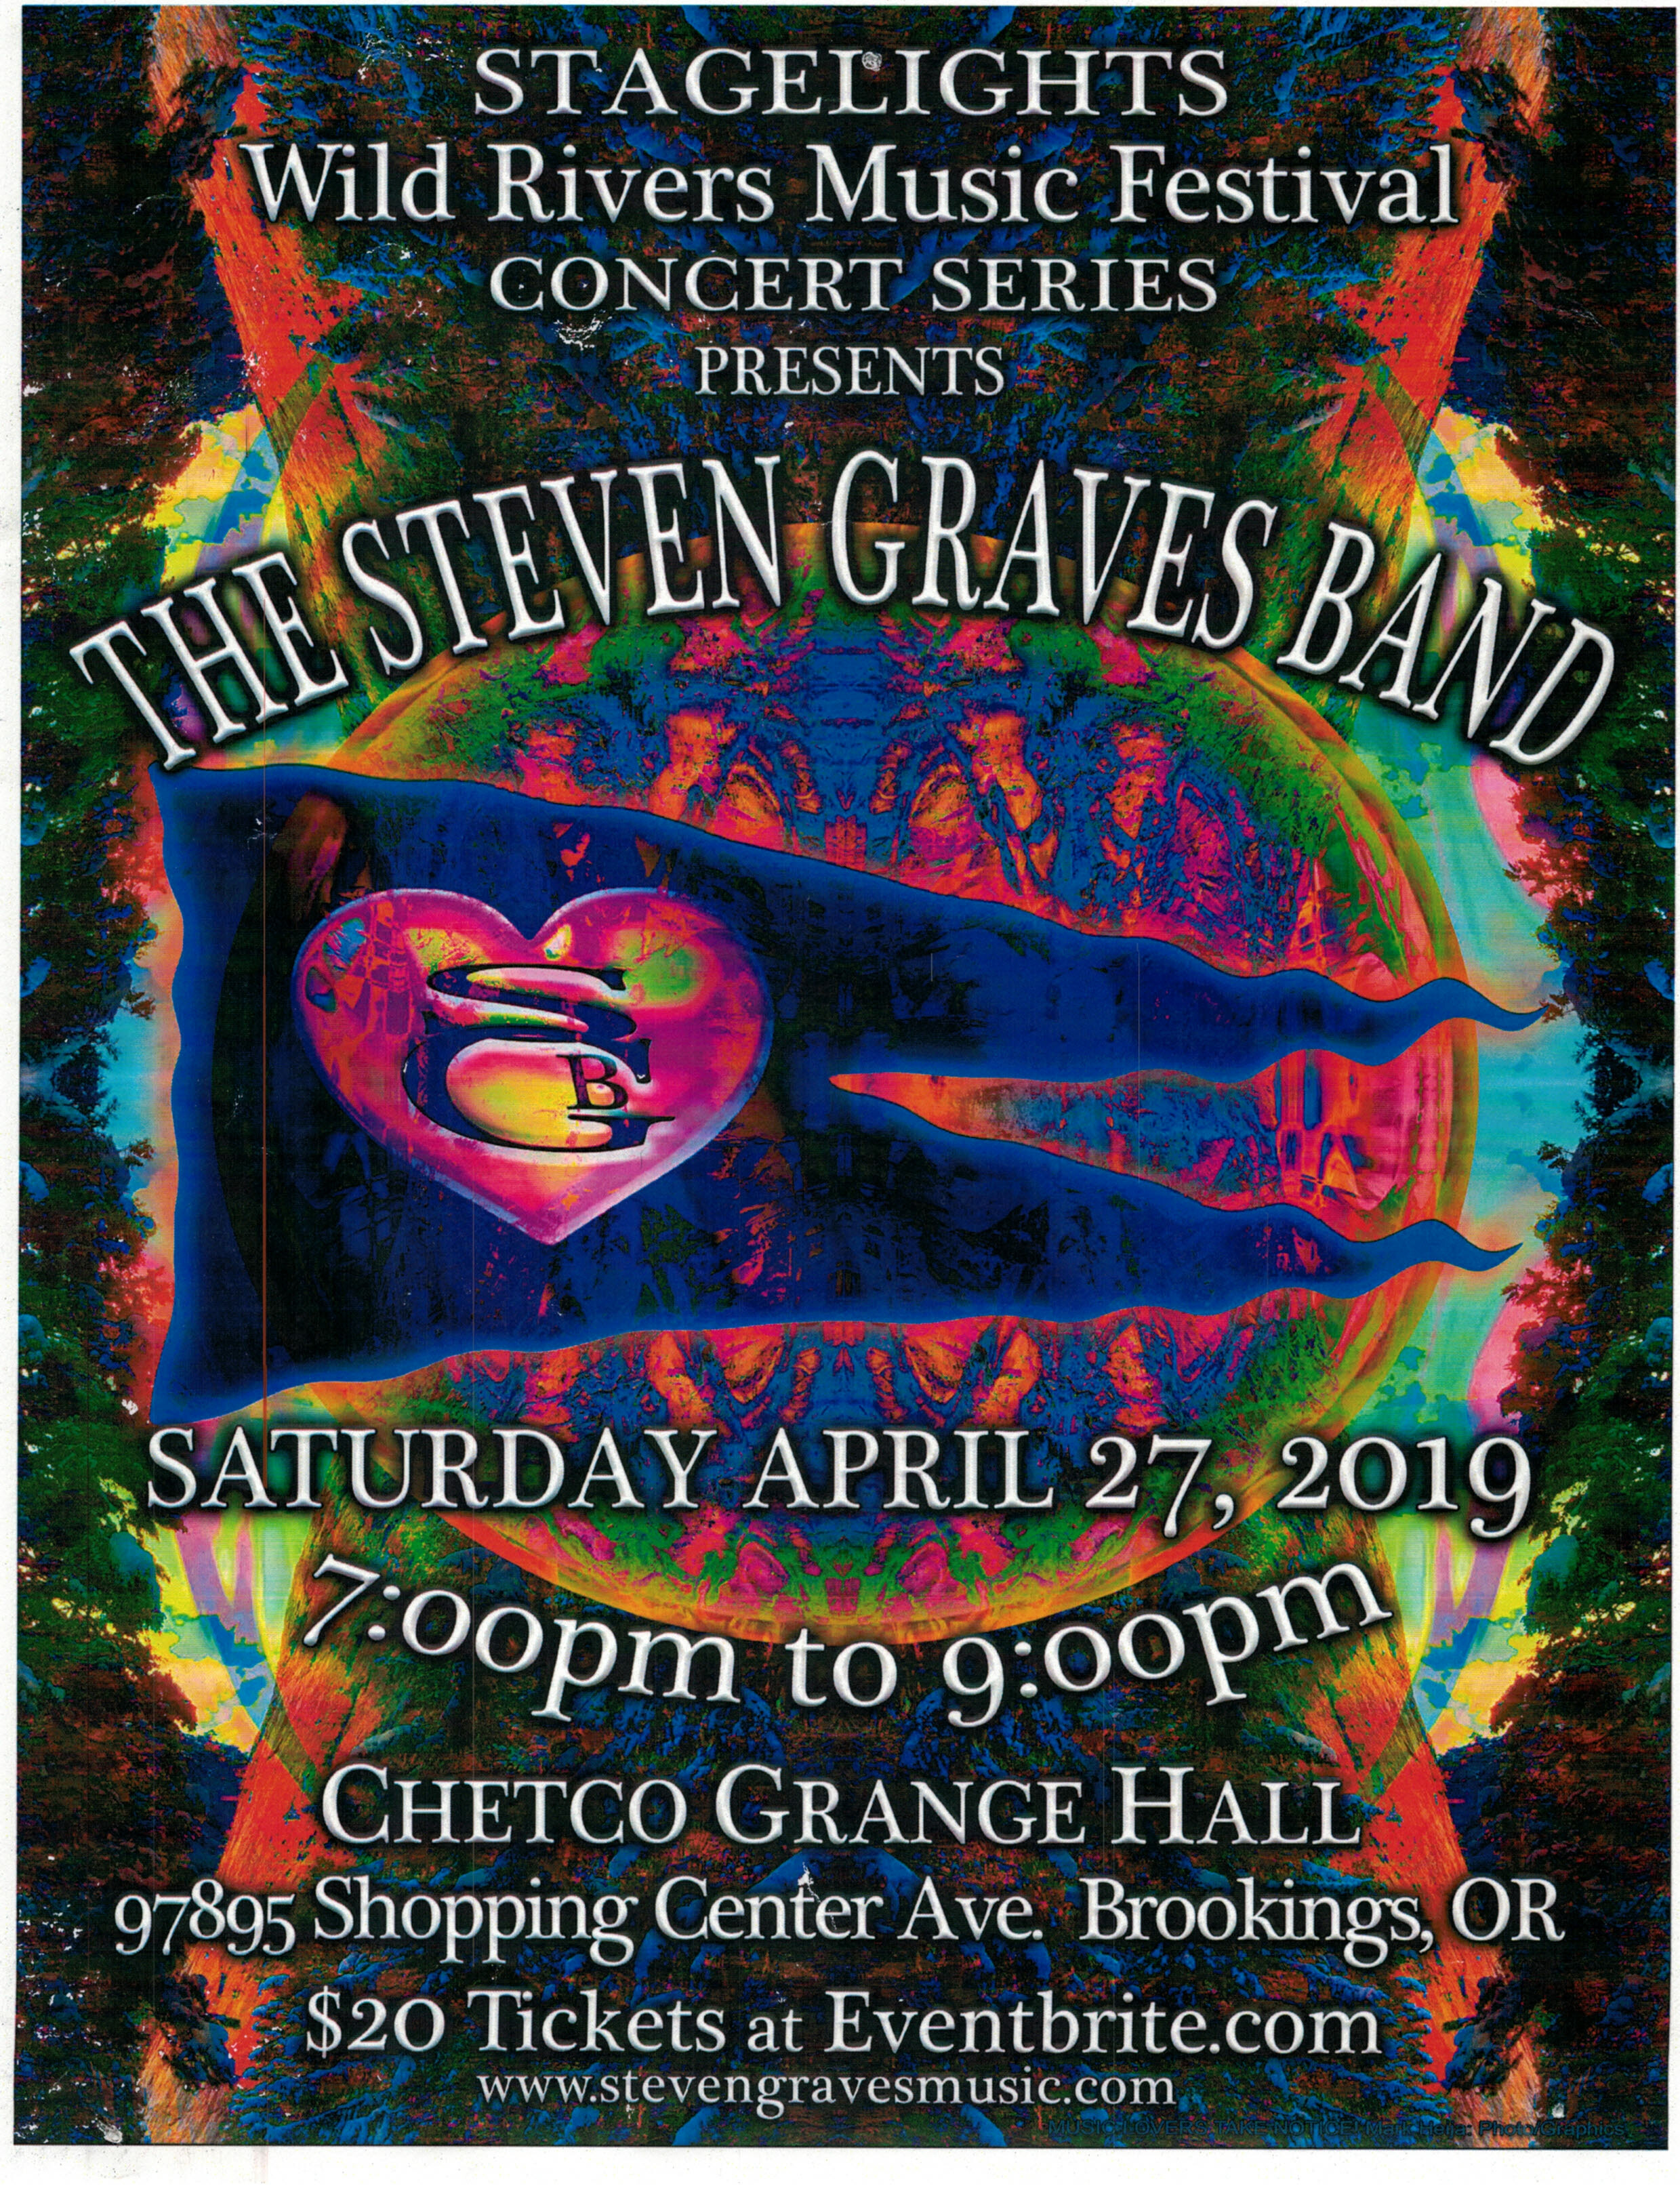 Stagelights-Steven Graves Band